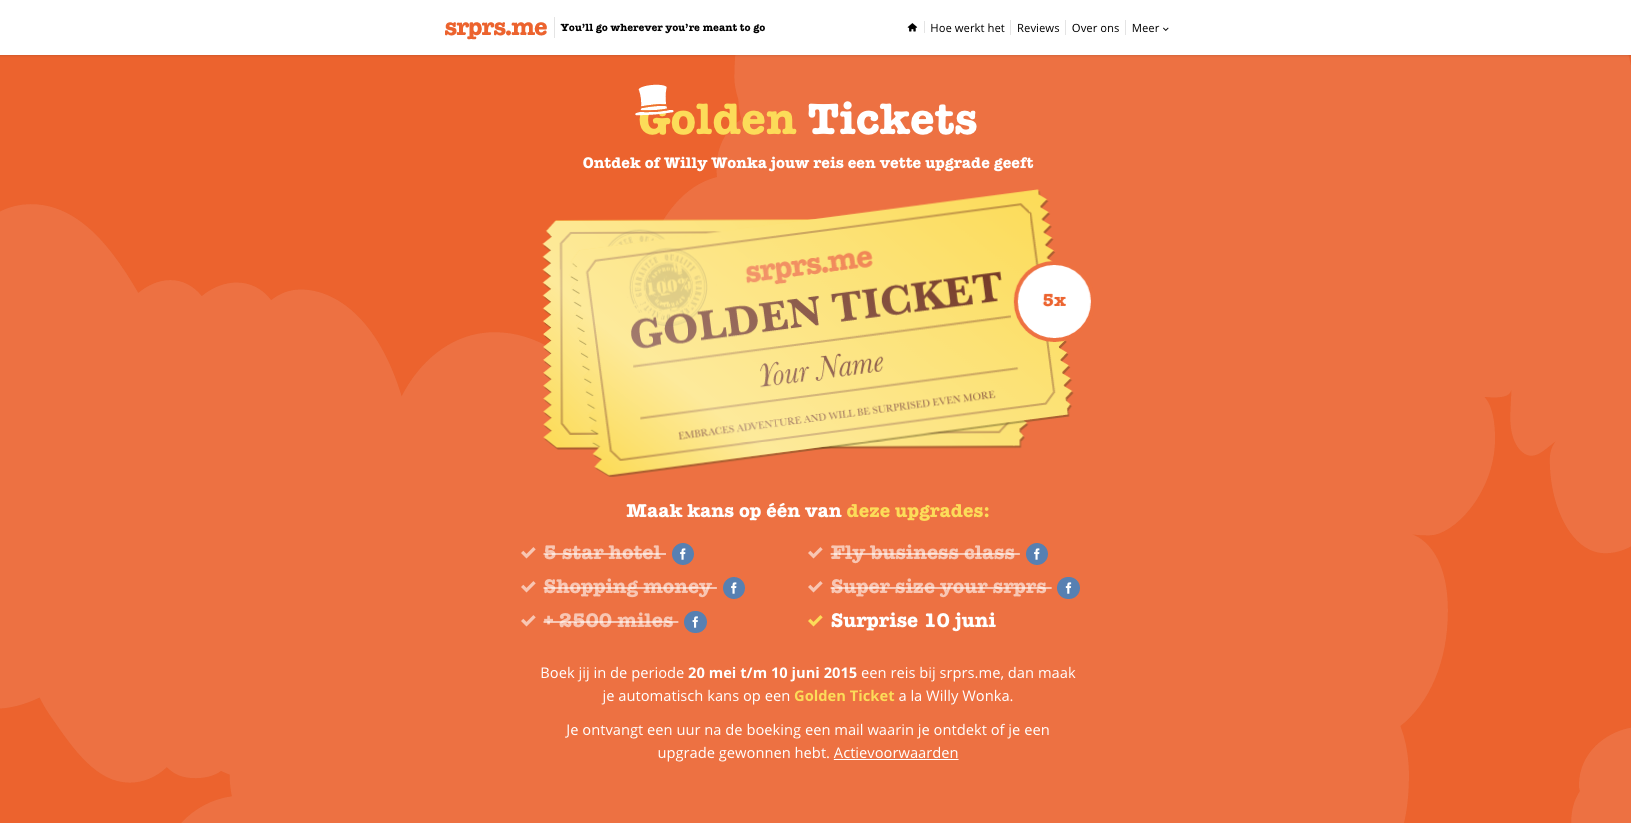 landingspage golden tickets marketing campagne srprsme